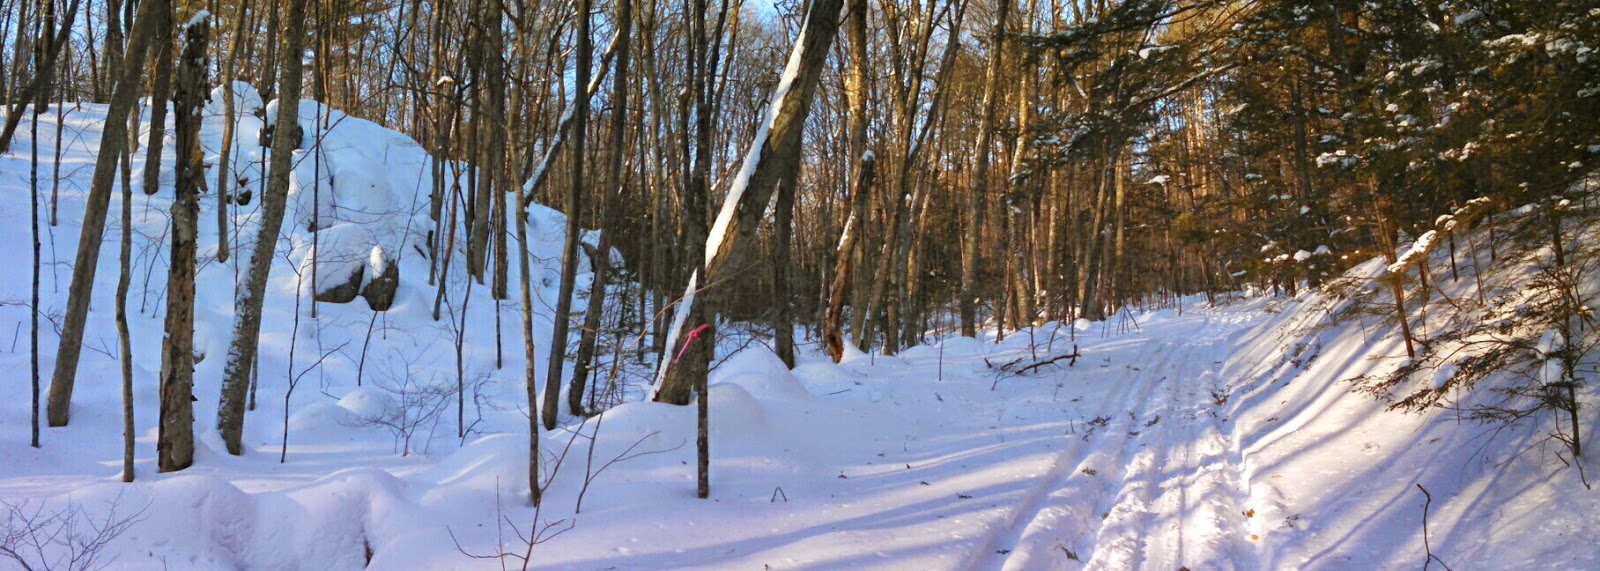 The Henhawk Trail in winter (photo by Ben Kimball)